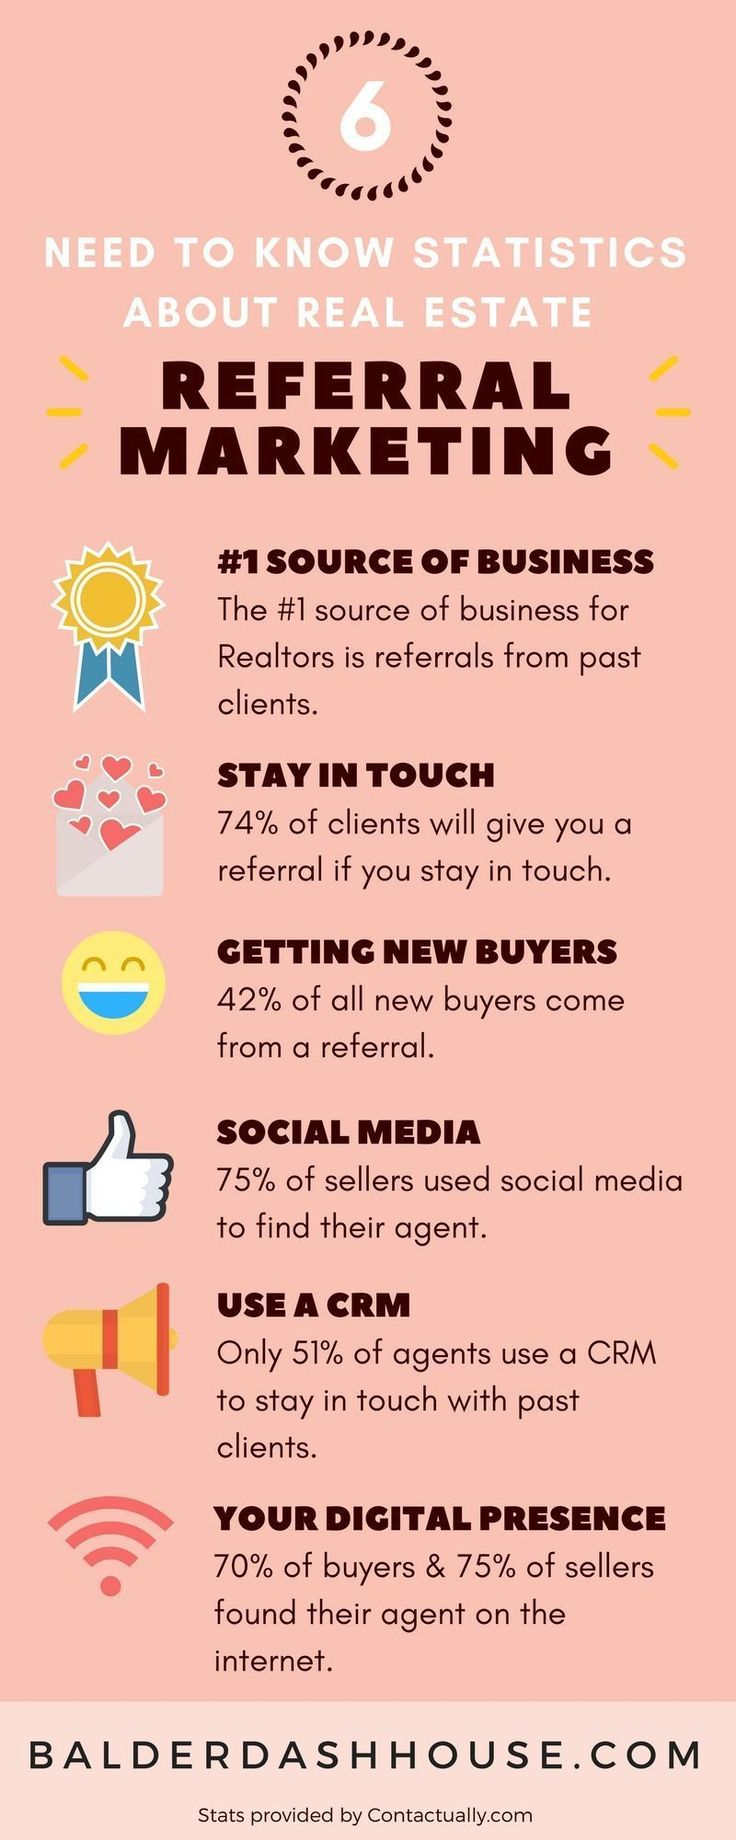 Some marketing tips that insurance agents can borrow from real estate agents #realestatetips #realestatemarketingideas